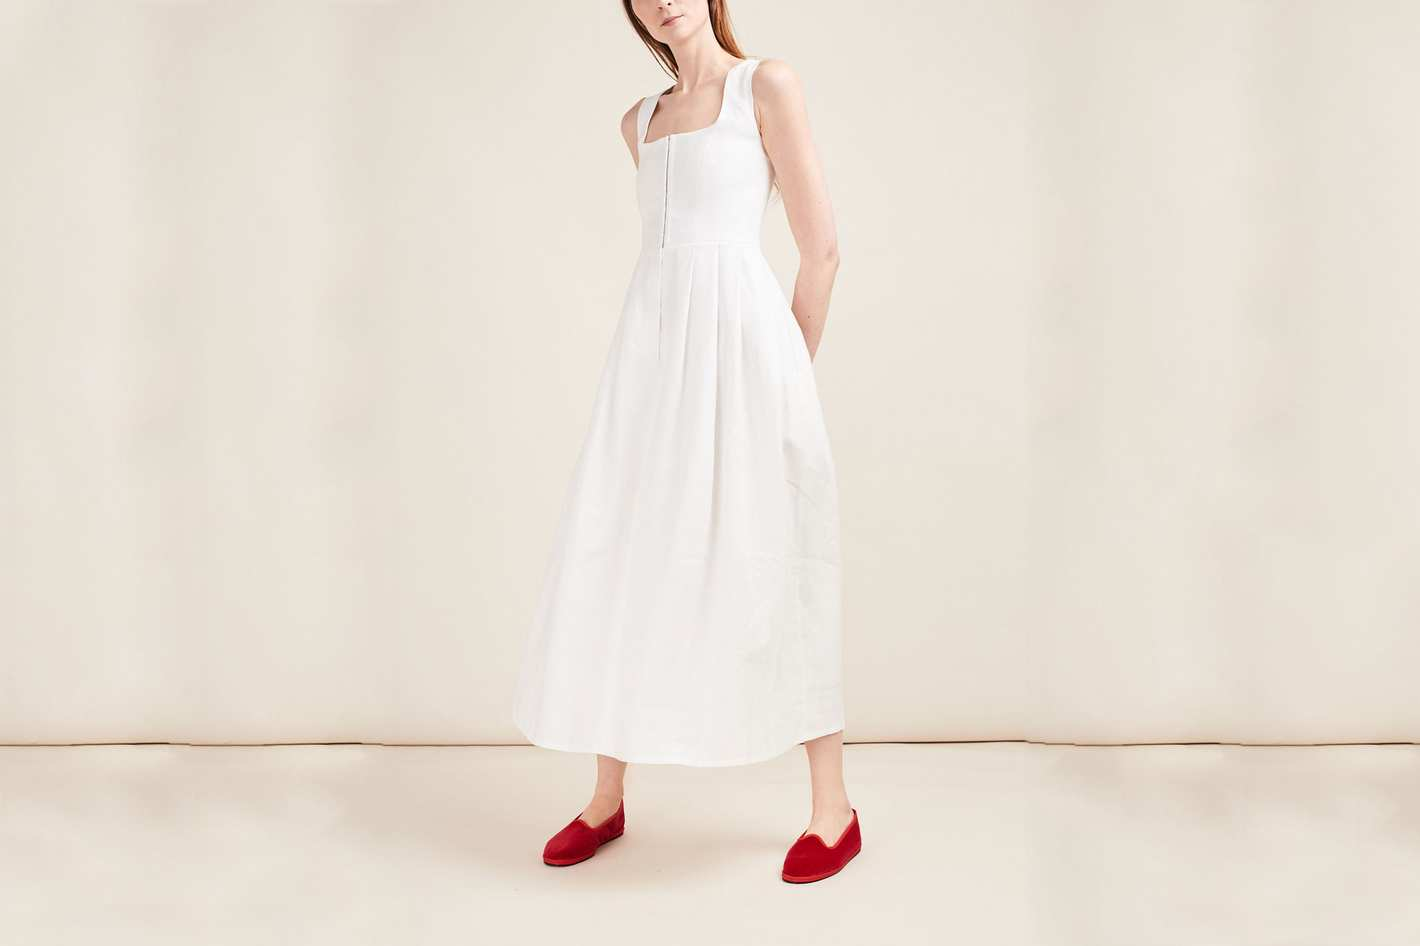 Gioia Bini White Midi Linen Dress